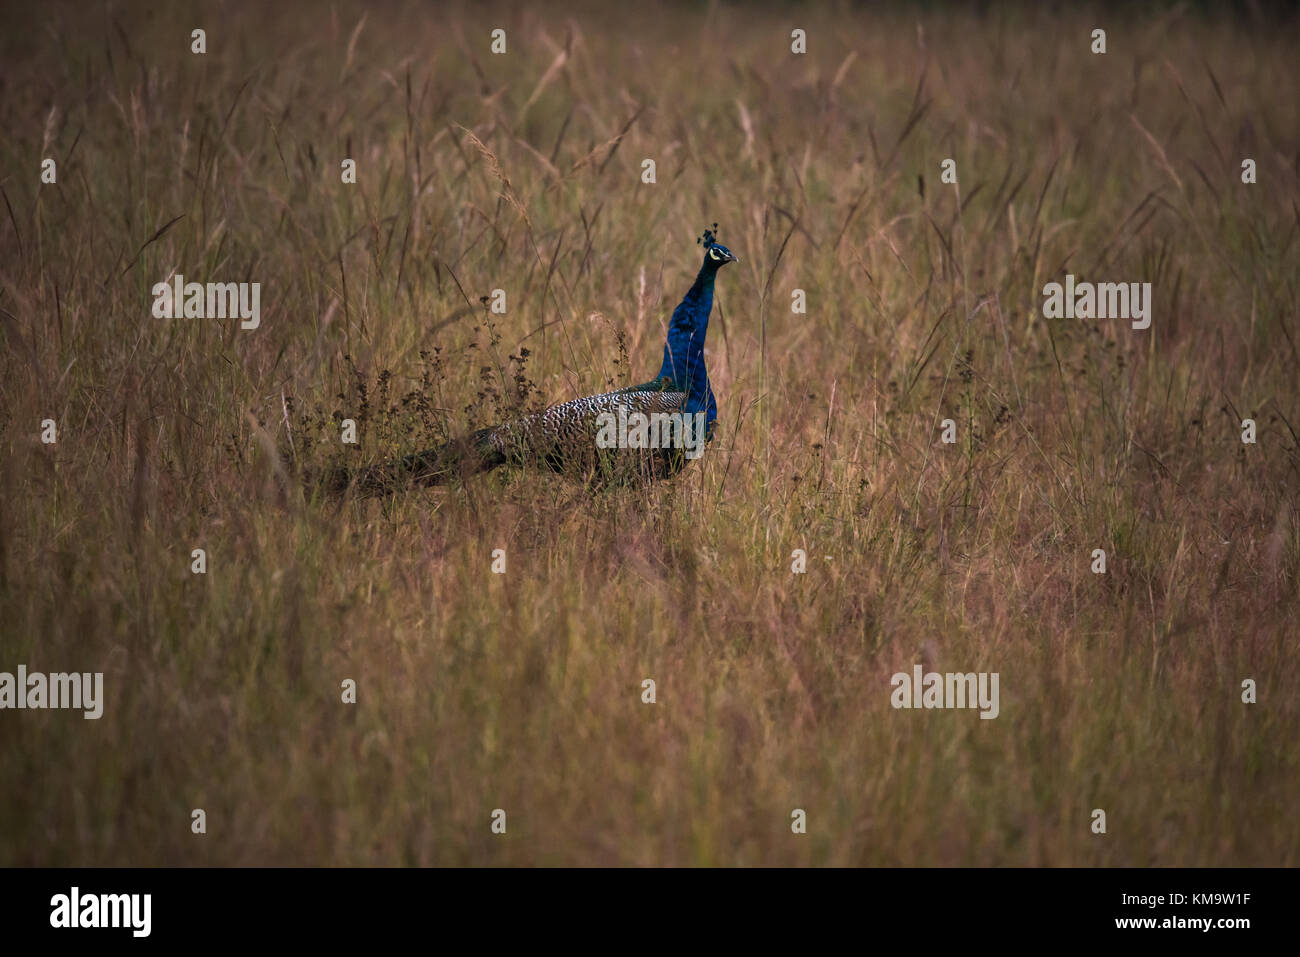 Indian peacock male in the grassland - Stock Image